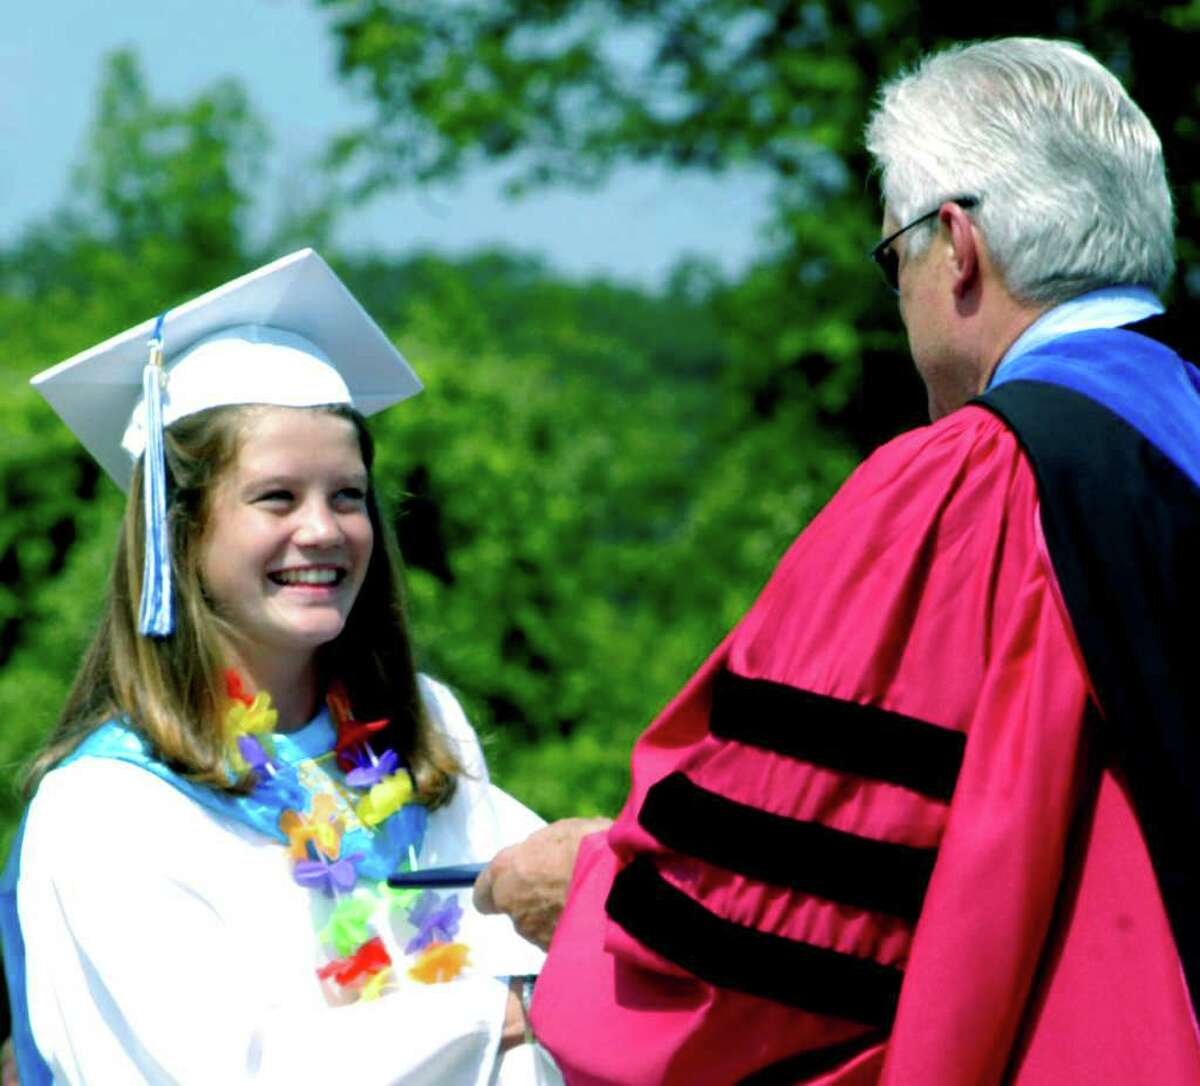 SPECTRUM/Linnea Quist is presented with her diploma as a graduate of Shepaug Valley High School by Region 12 Superintendent of Schools Dr. Bruce Storm during commencement exercises held June 18, 2011 in front of a sun-drenched crowd on the school campus in Washington.